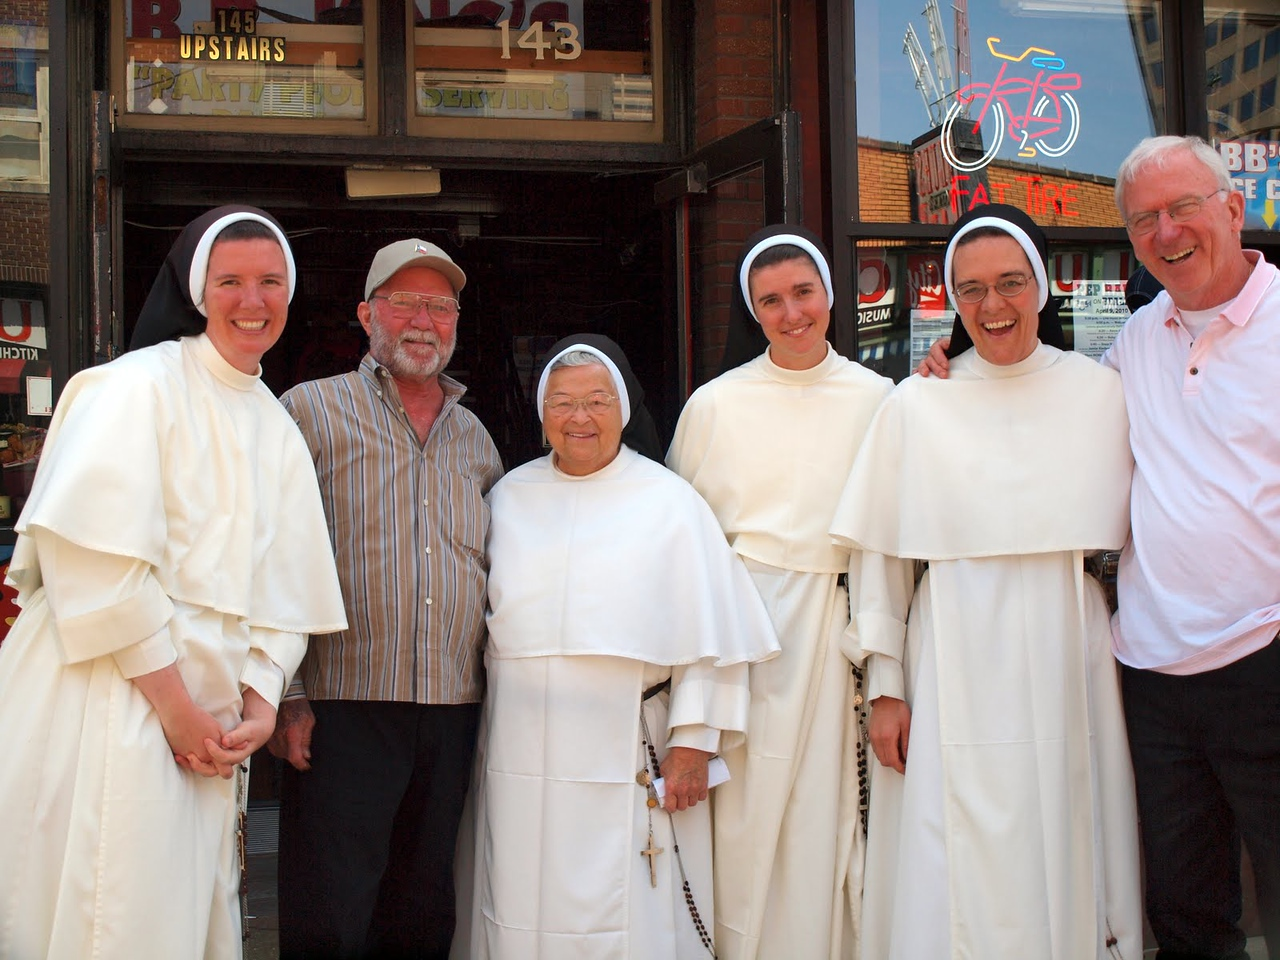 Some neat Dominican sisters we met on Beale Street